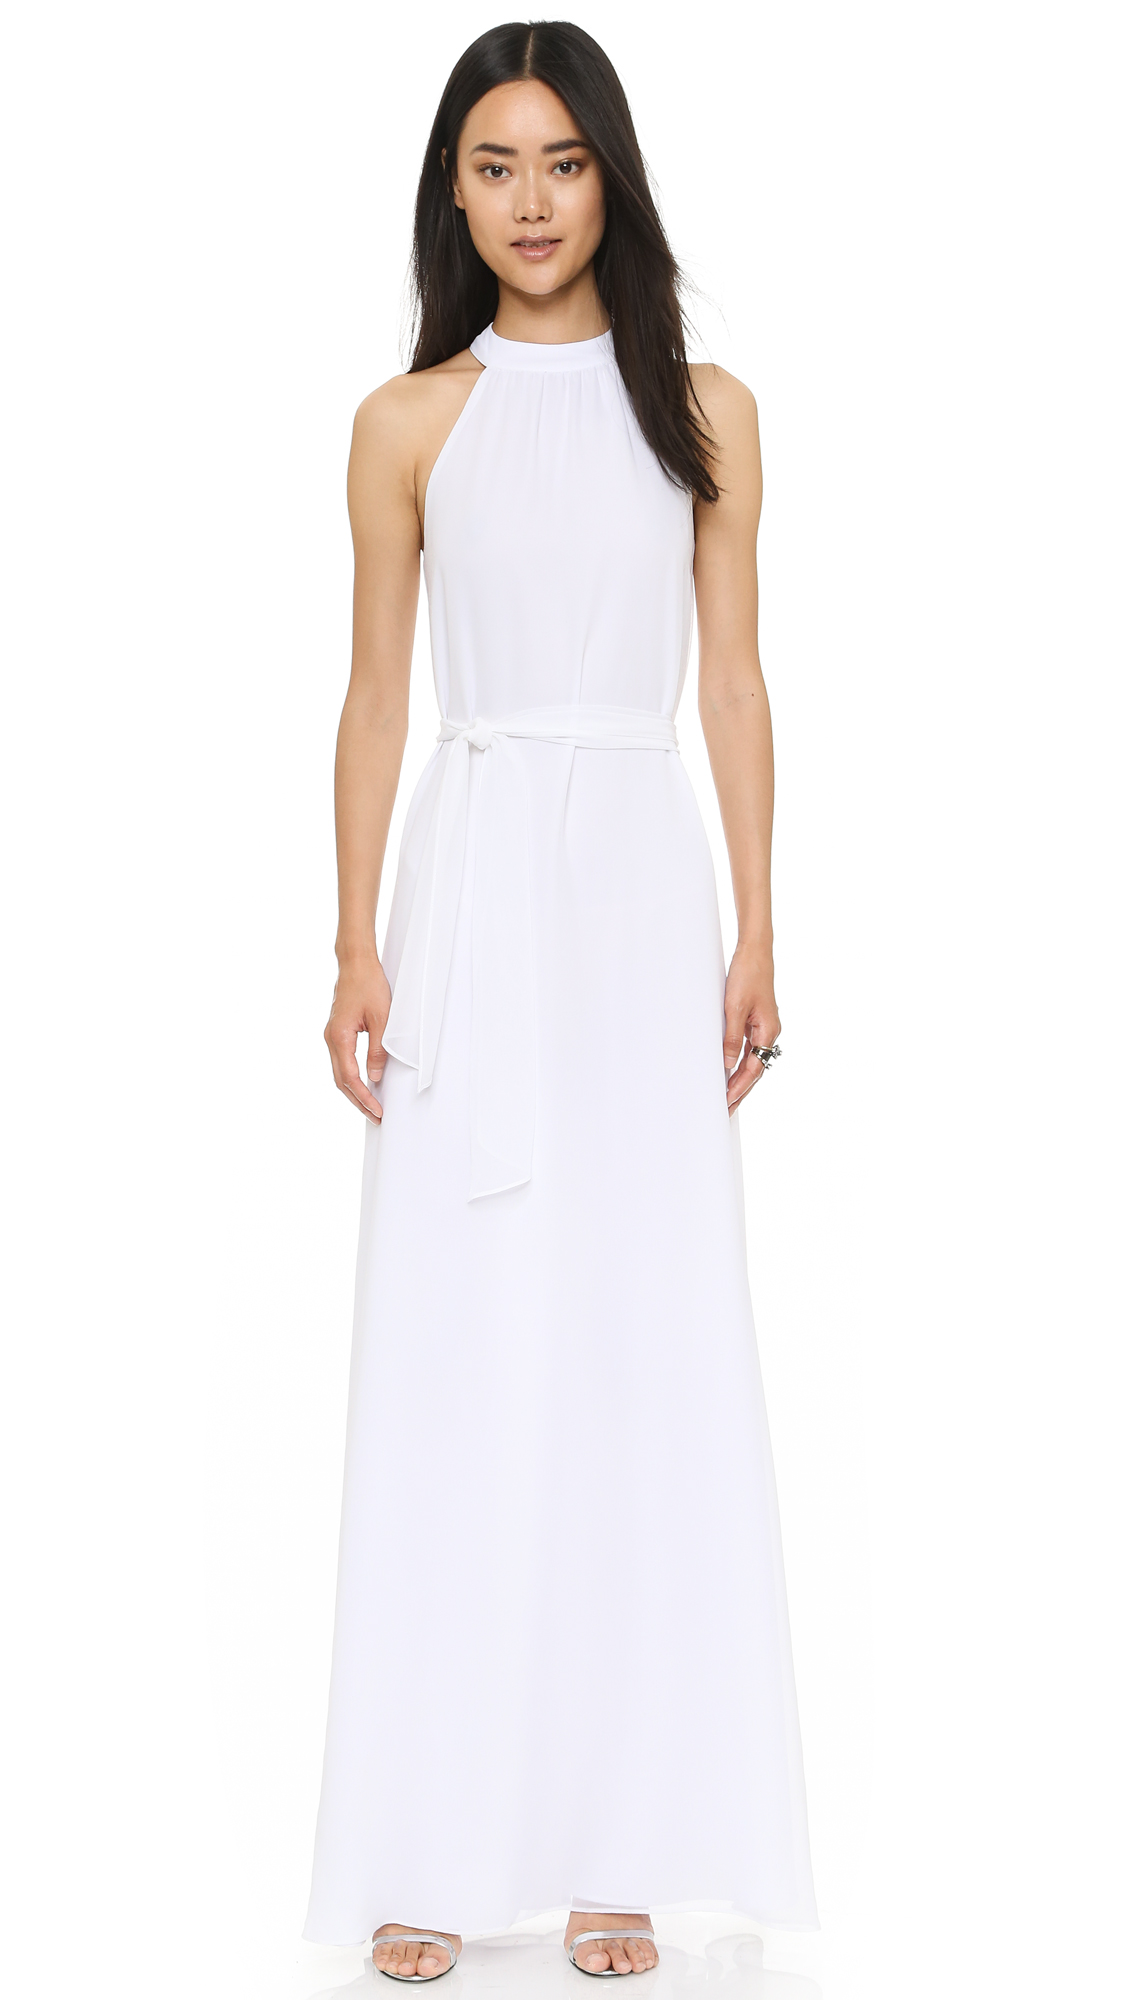 Joanna August Elena Collar Column Dress - White Wedding